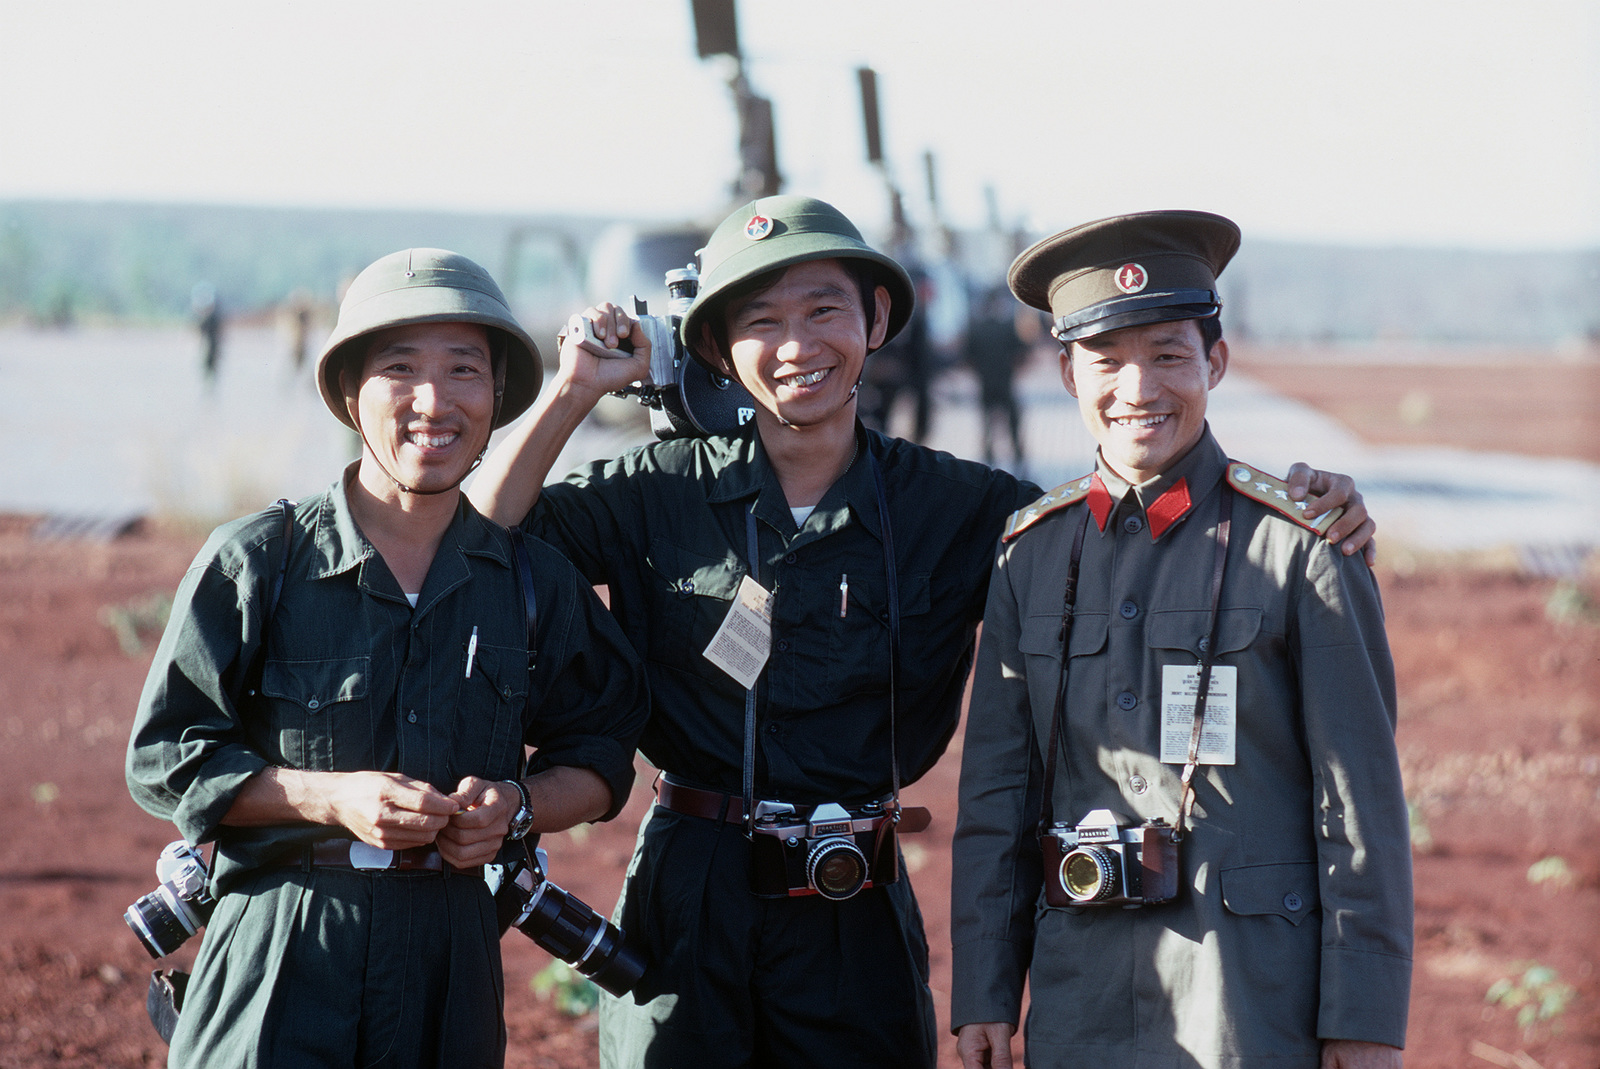 Two Viet Cong and a North Vietnamese Army officer with still and motion picture cameras that they will use to photograph the exchange of prisoners of war